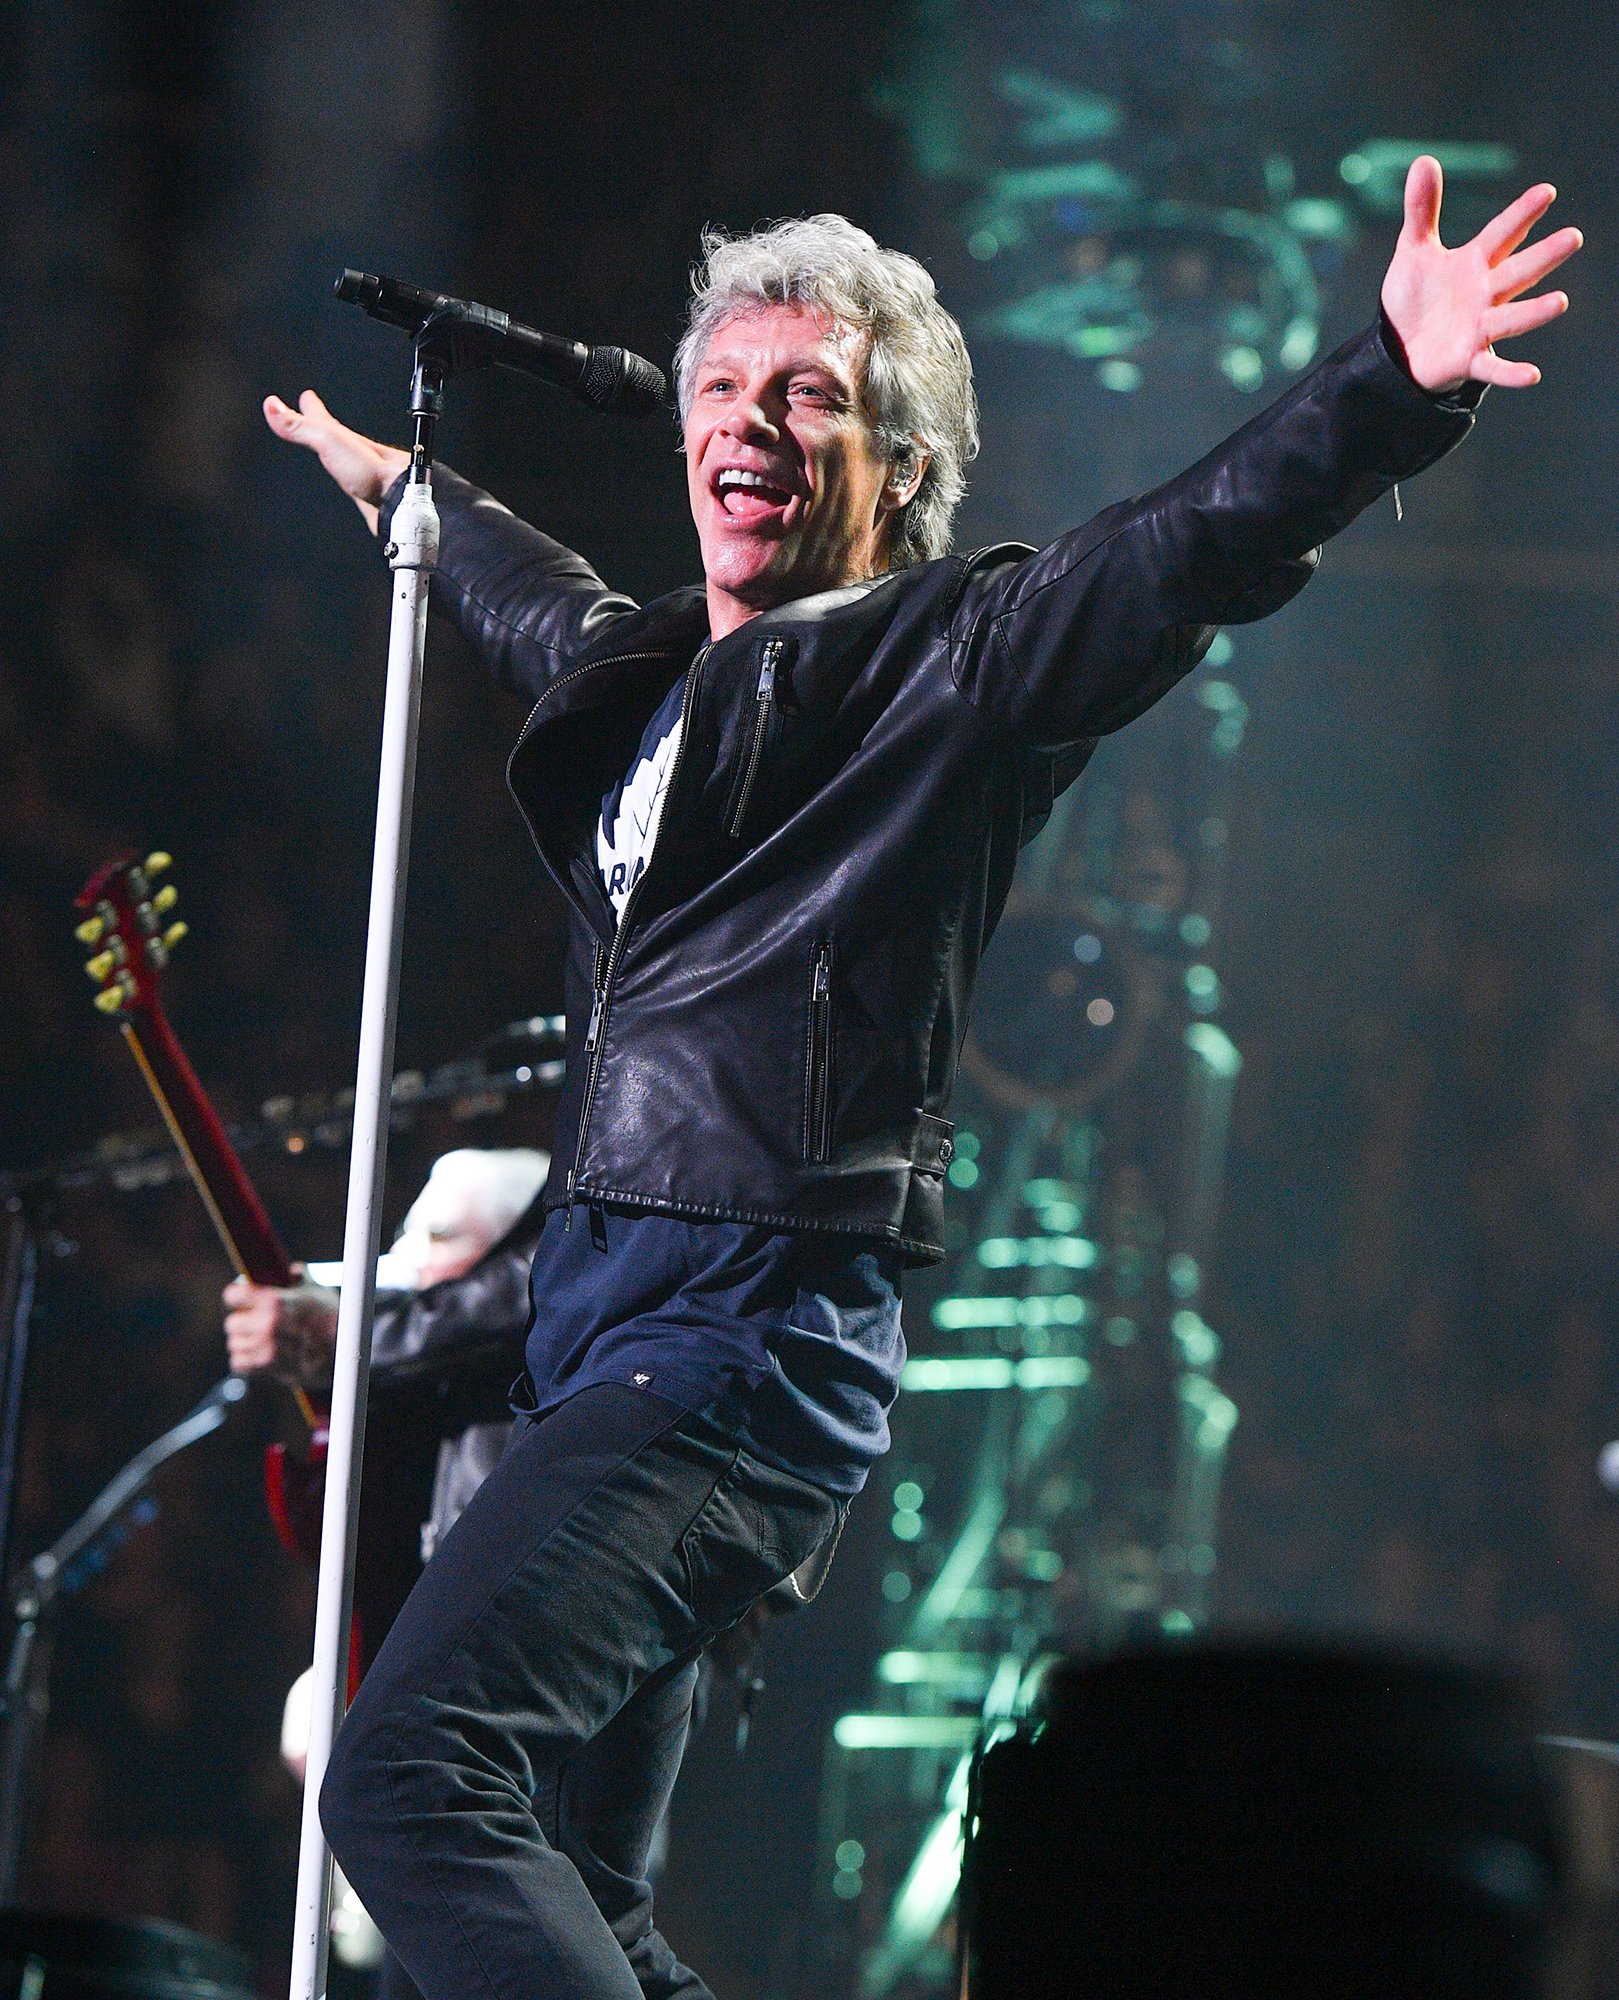 Jon Bon Jovi Performs At Air Canada Centre